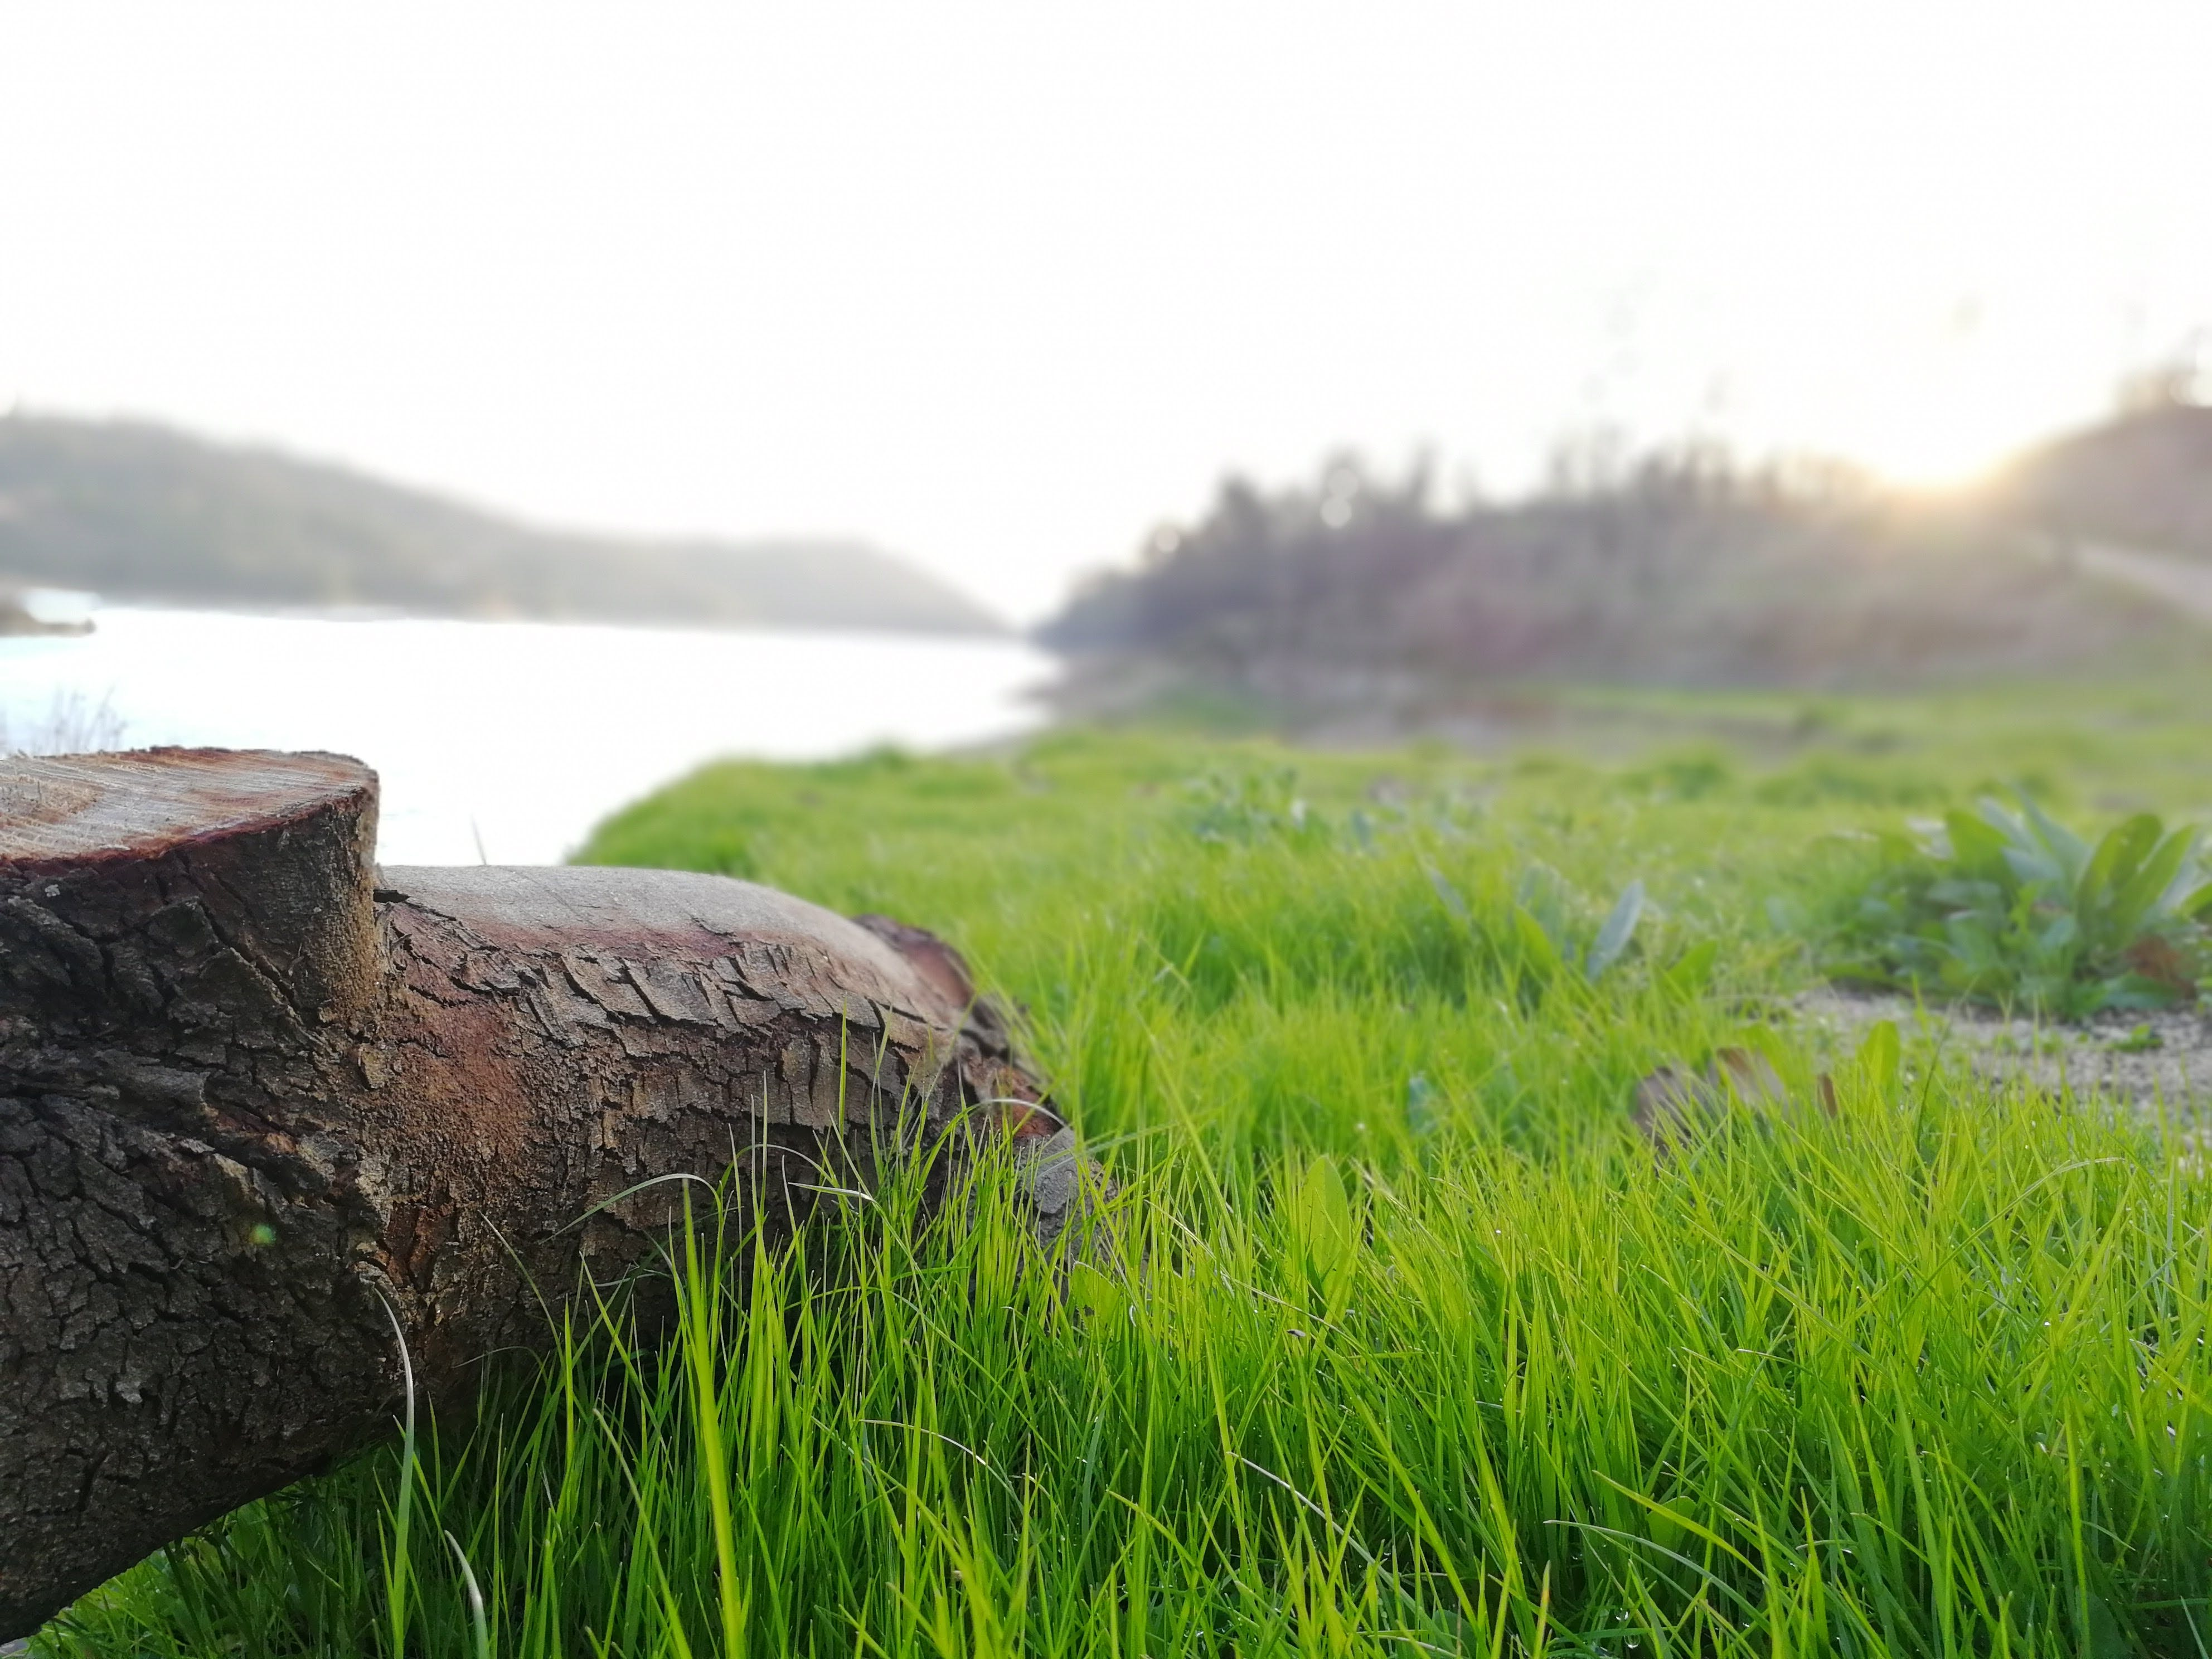 Selective Focus Photography of Brown Tree Trunk Near Green Grass Field